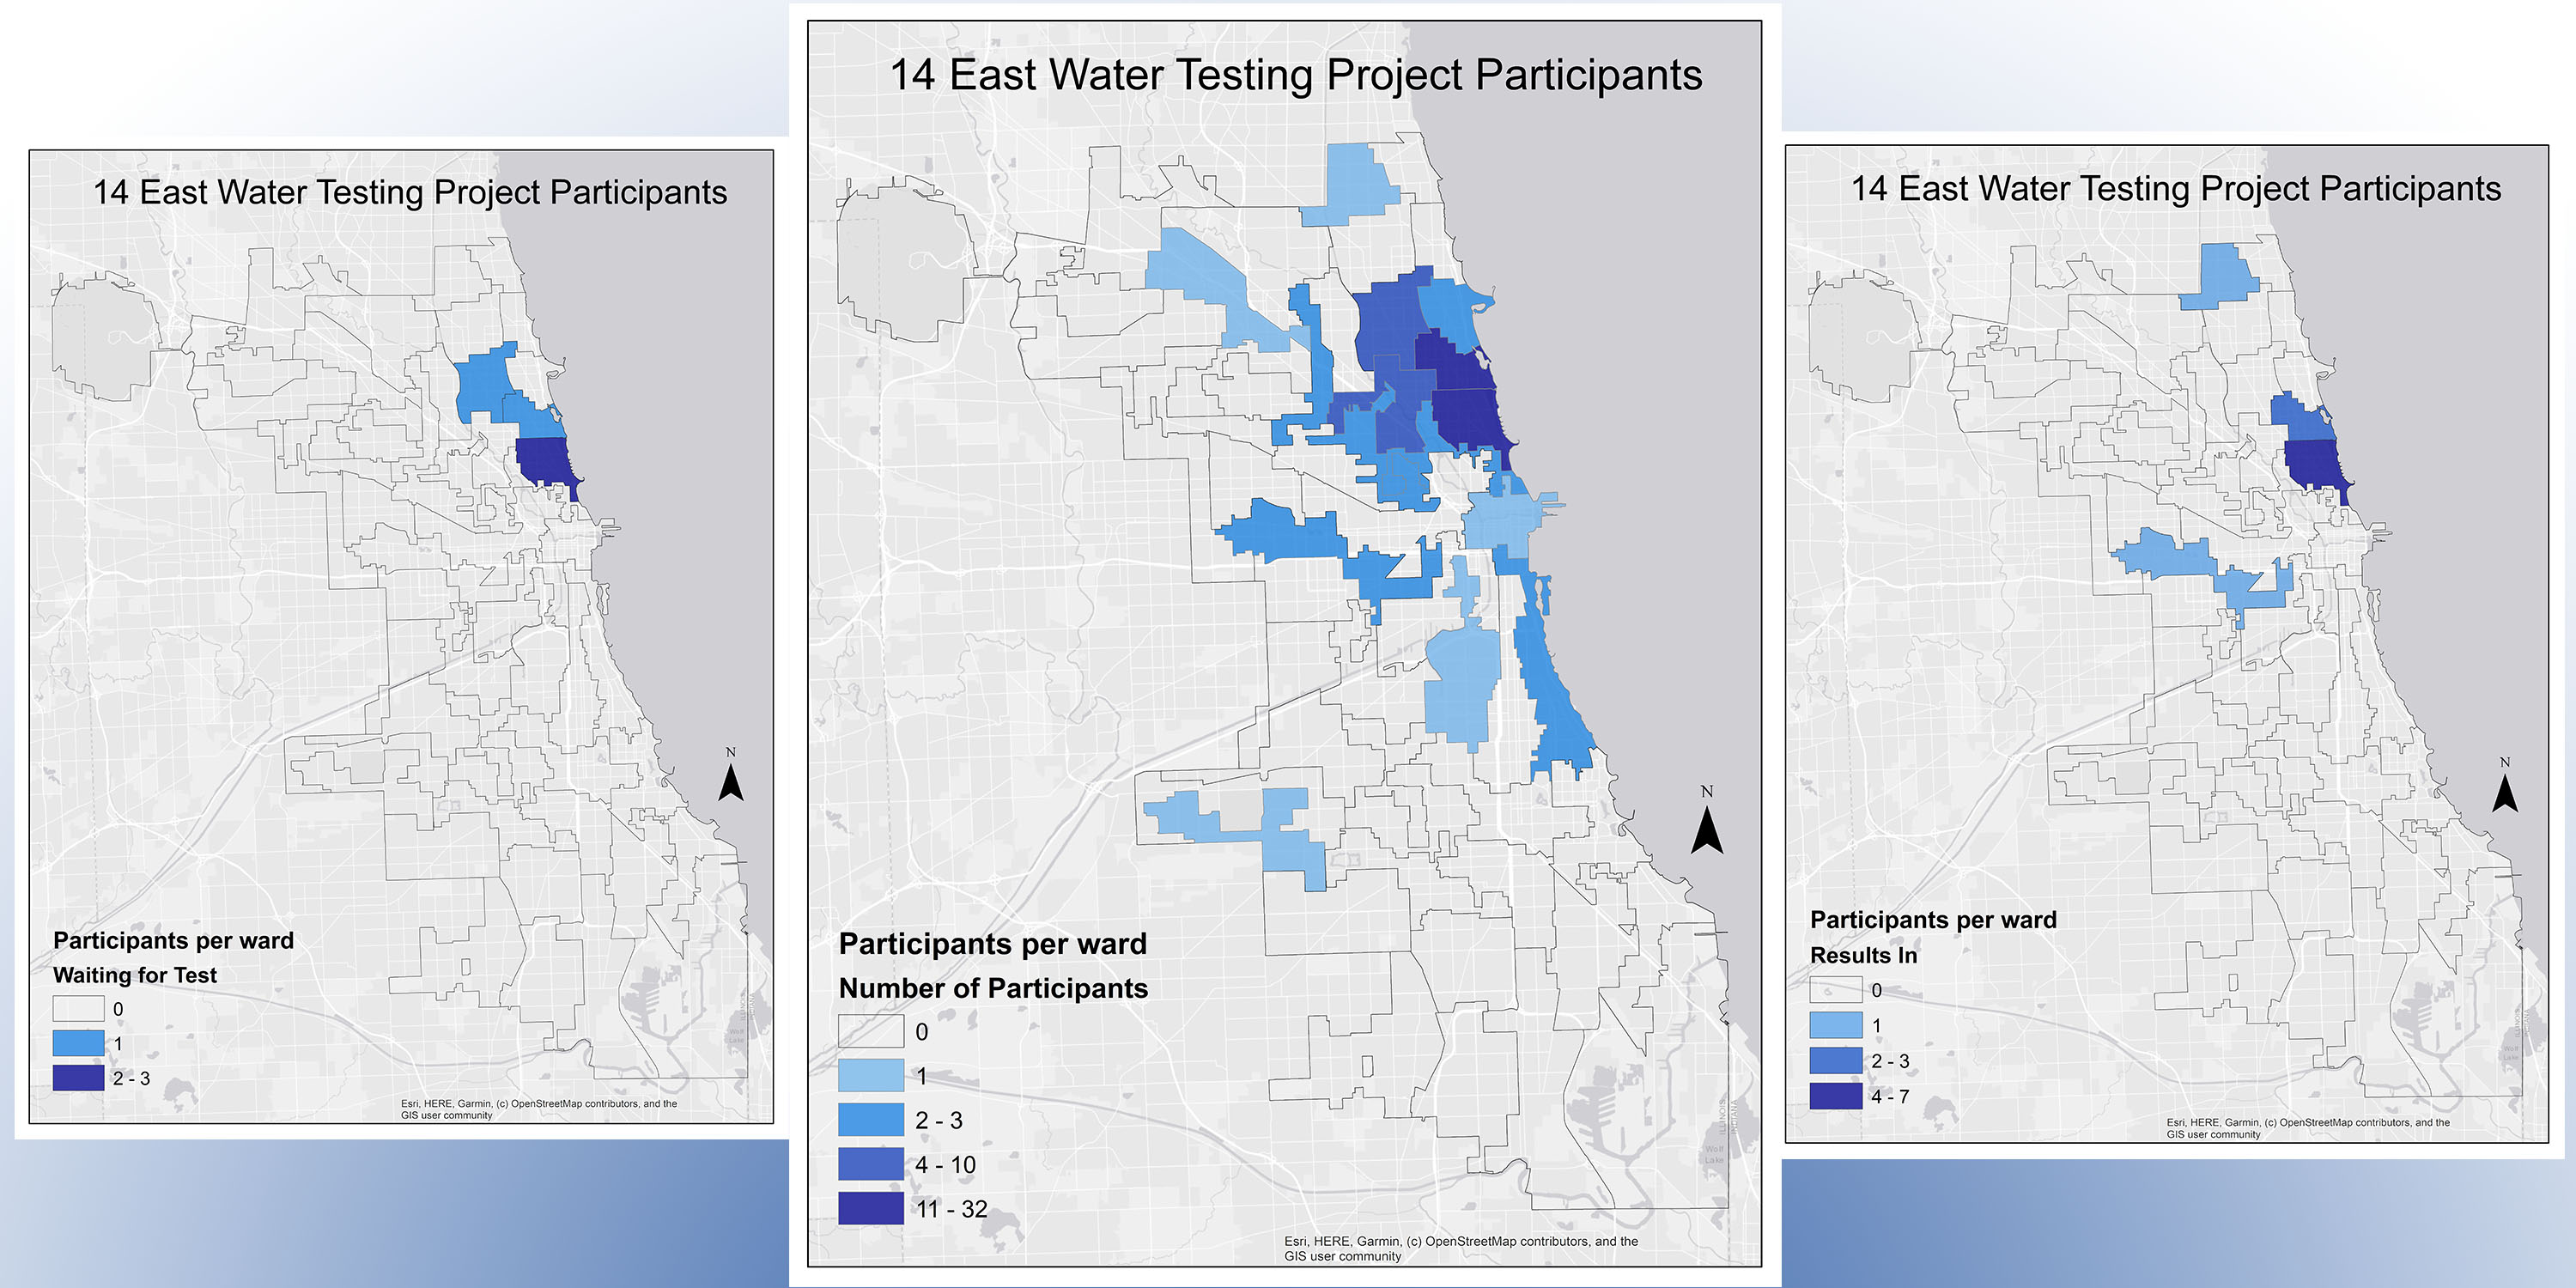 14 East Investigates Lead Contaminated Water and its Effect ... Depaul Map on north park map, charleston southern map, iona map, texas a&m map, u of iowa map, xavier map, auburn university map, fordham map, drexel map, seton hall map, northern illinois map, loyola map, liberty map, lincoln park map, u of miami map, museum park map, u of illinois map, university of illinois at chicago map, quinnipiac map, texas wesleyan map,